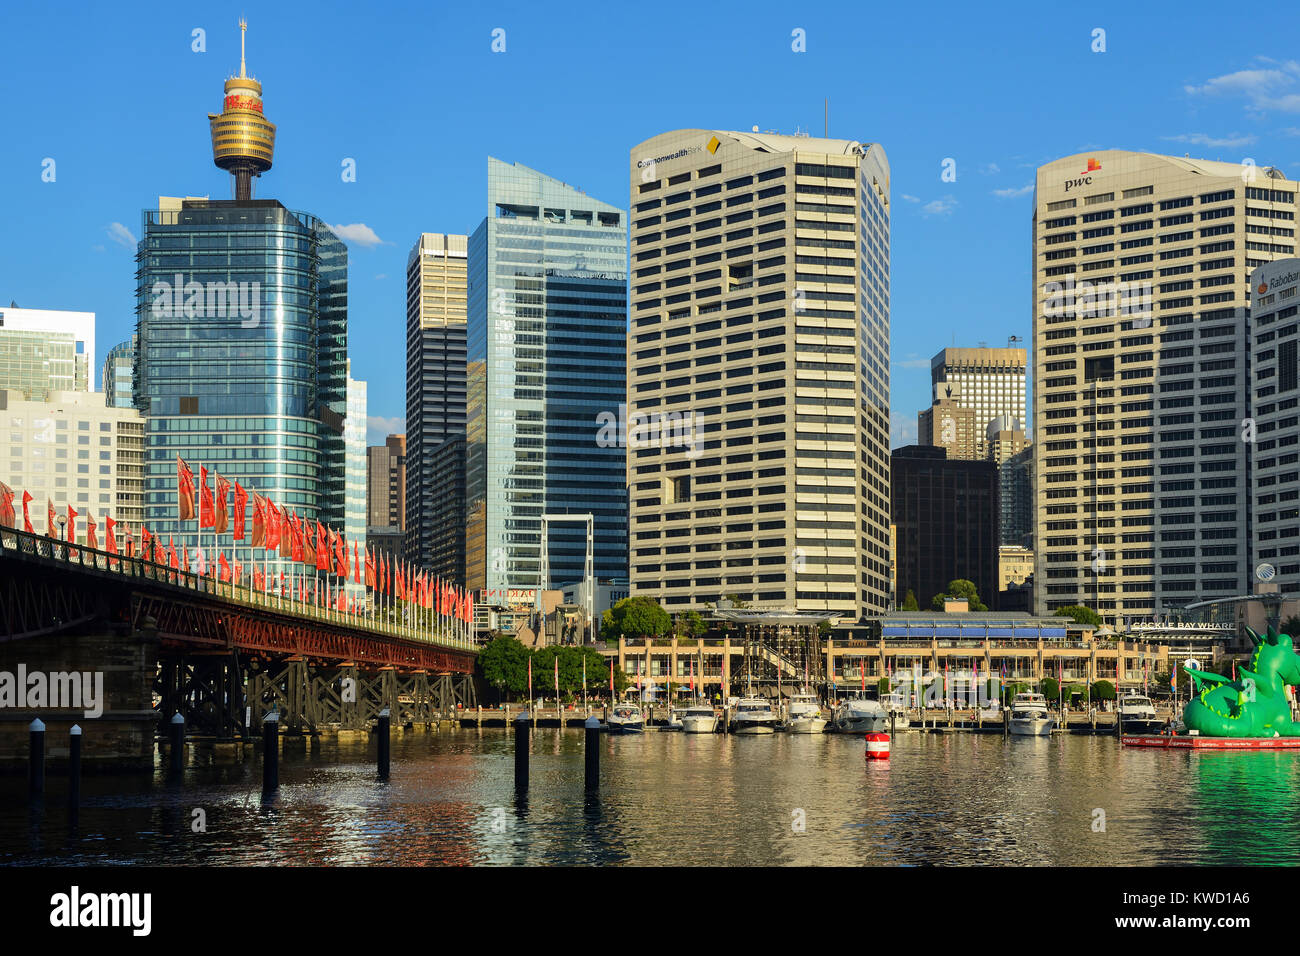 Pyrmont Bridge and Cockle Bay Wharf in Darling Harbour, with Sydney Central Business District in background - Sydney, - Stock Image